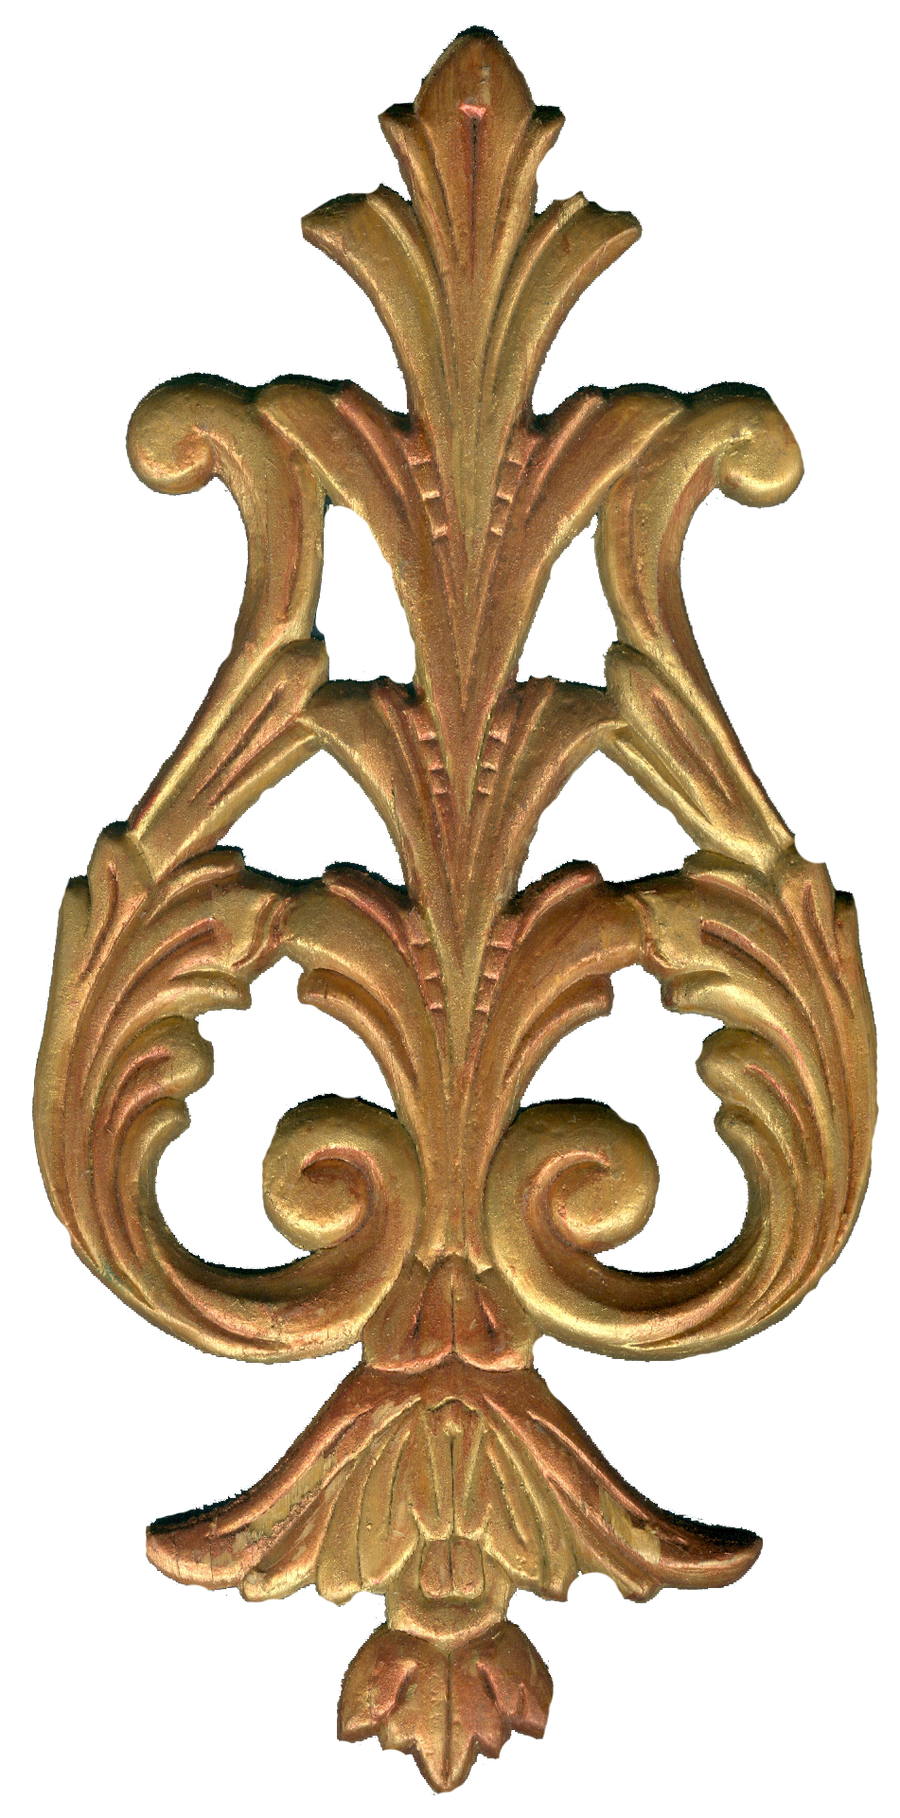 Woodworking wood ornaments PDF Free Download